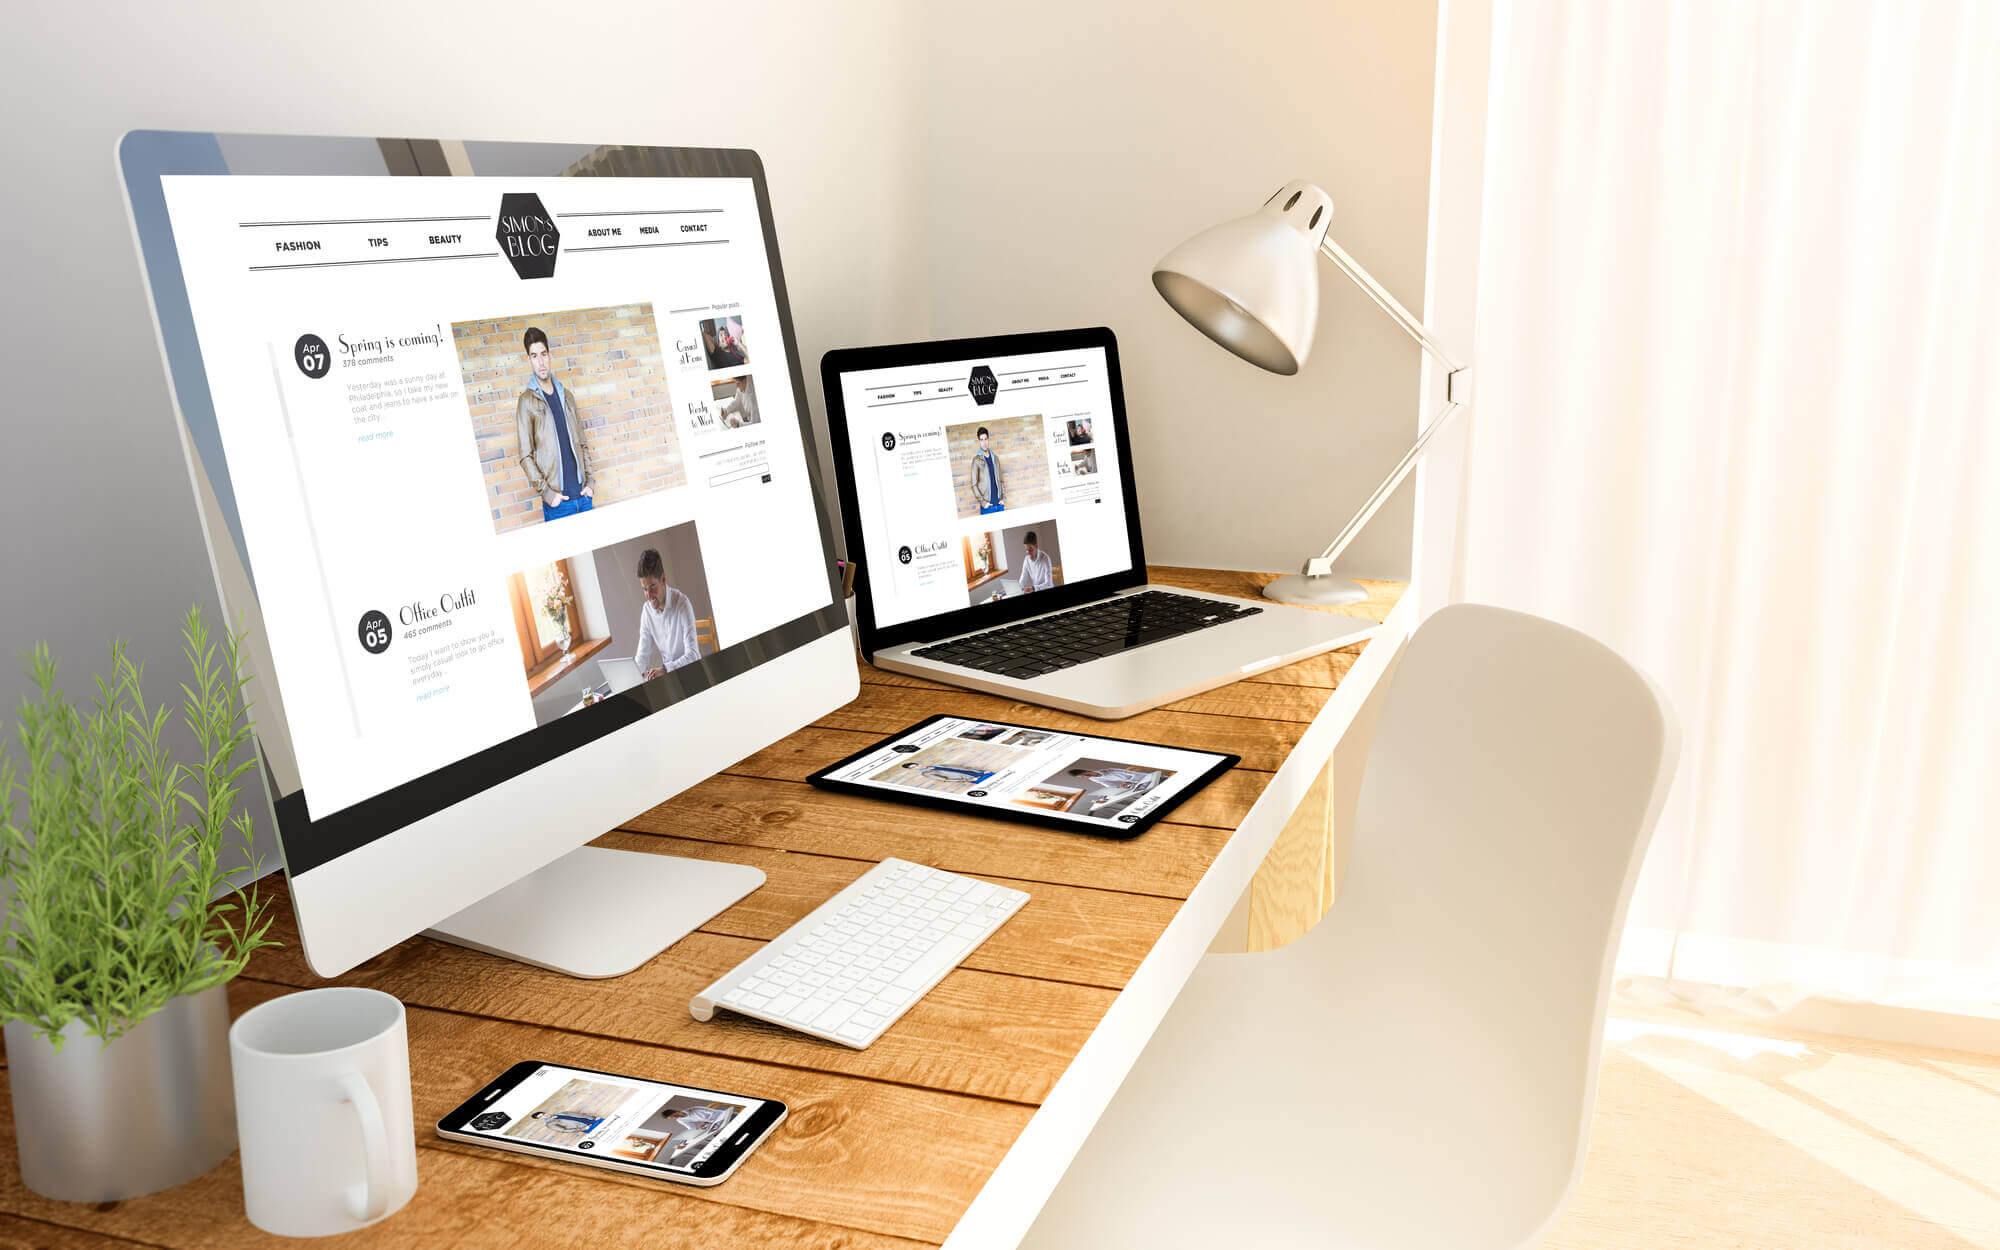 Why should I hire a professional for web design Miami?